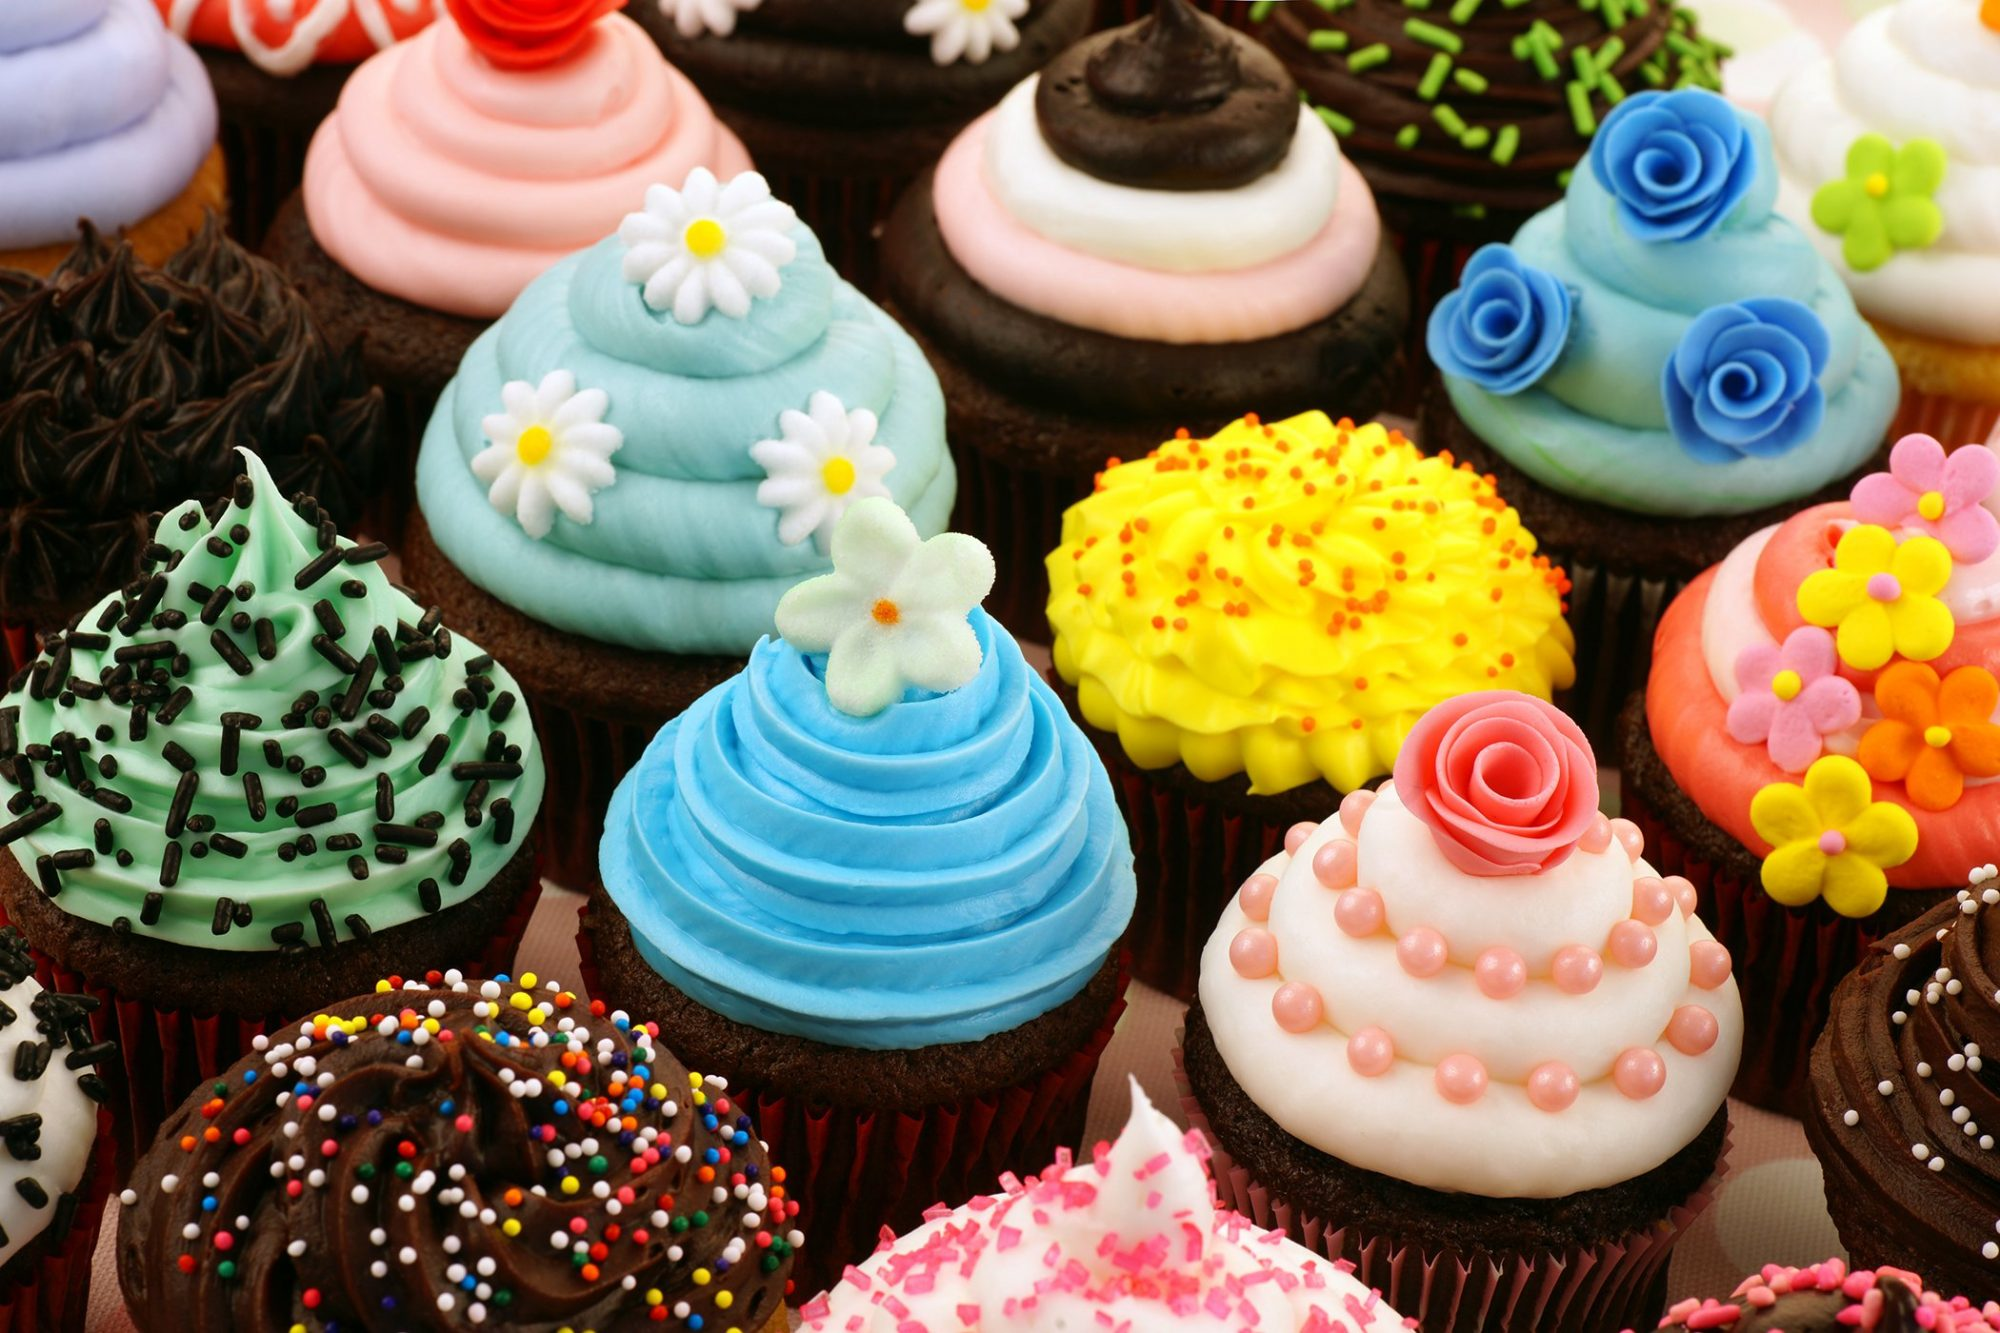 Alert! Walmart Is Having a Birthday Party and Everybody Gets Free Cupcakes on Sunday